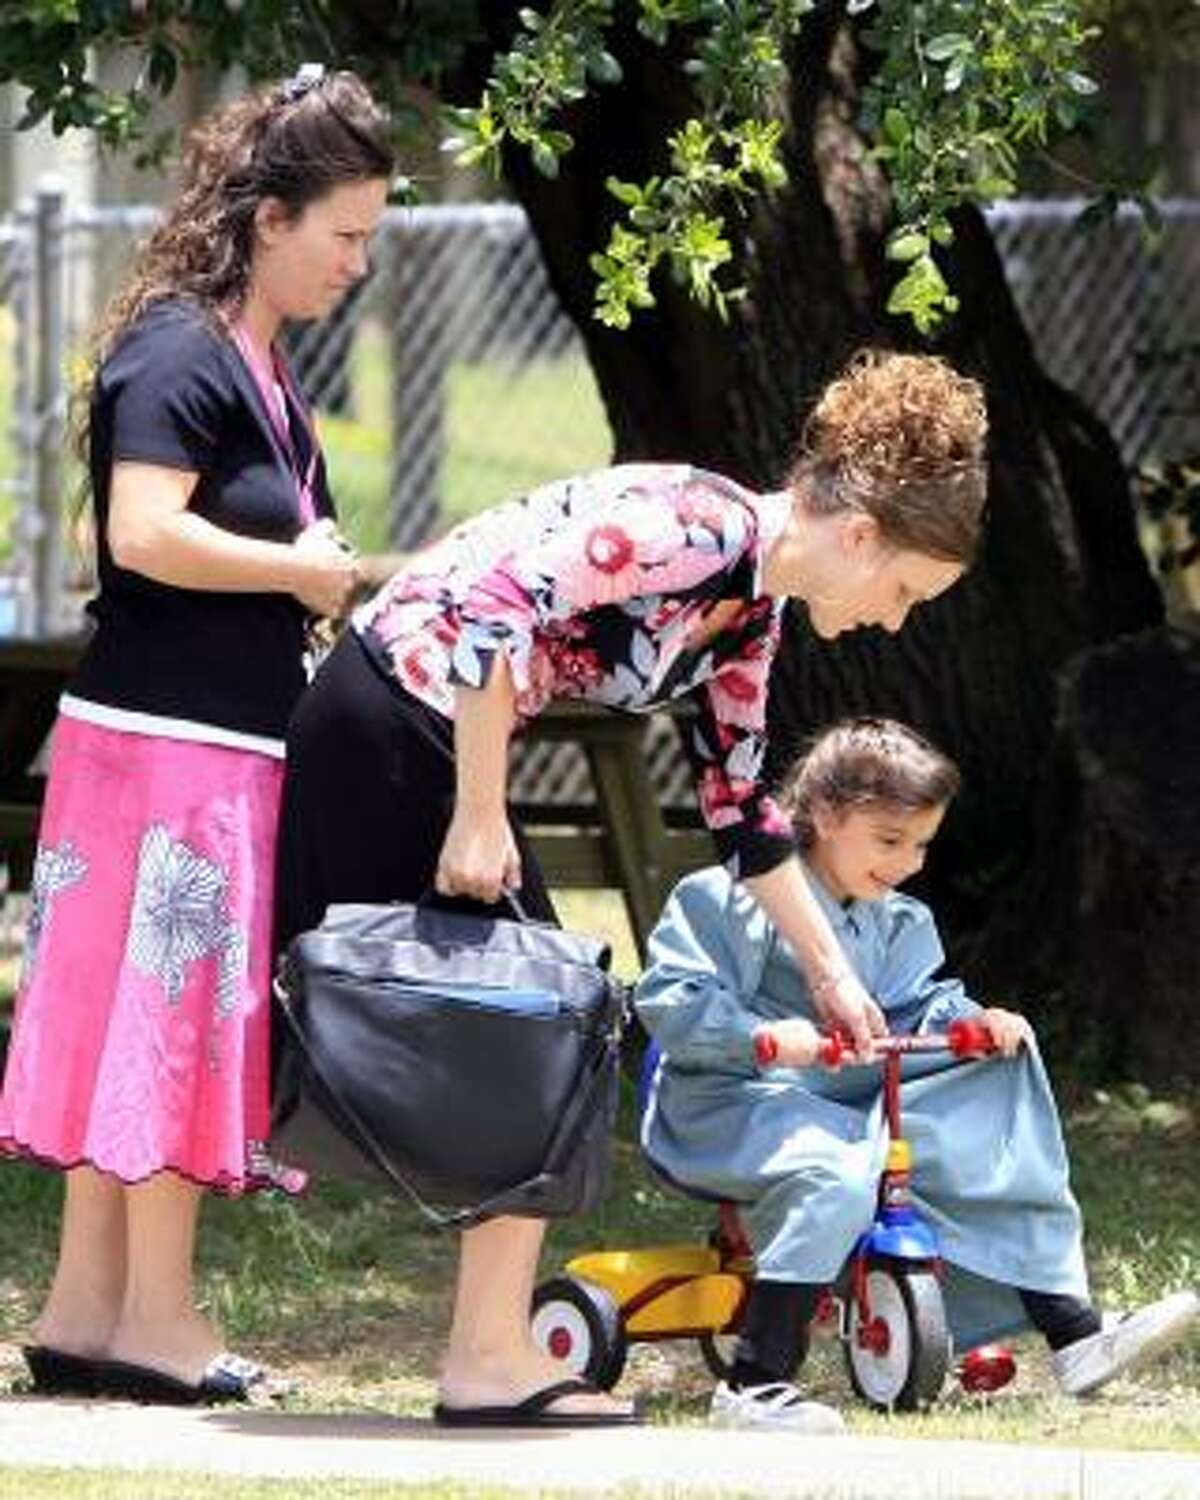 Two women lead a young FLDS member to a car at the Kidz Harbor group home Tuesday in Liverpool. There were many firsts for the children: first hula hoop, first bicycle, seeing a dog and humidity.